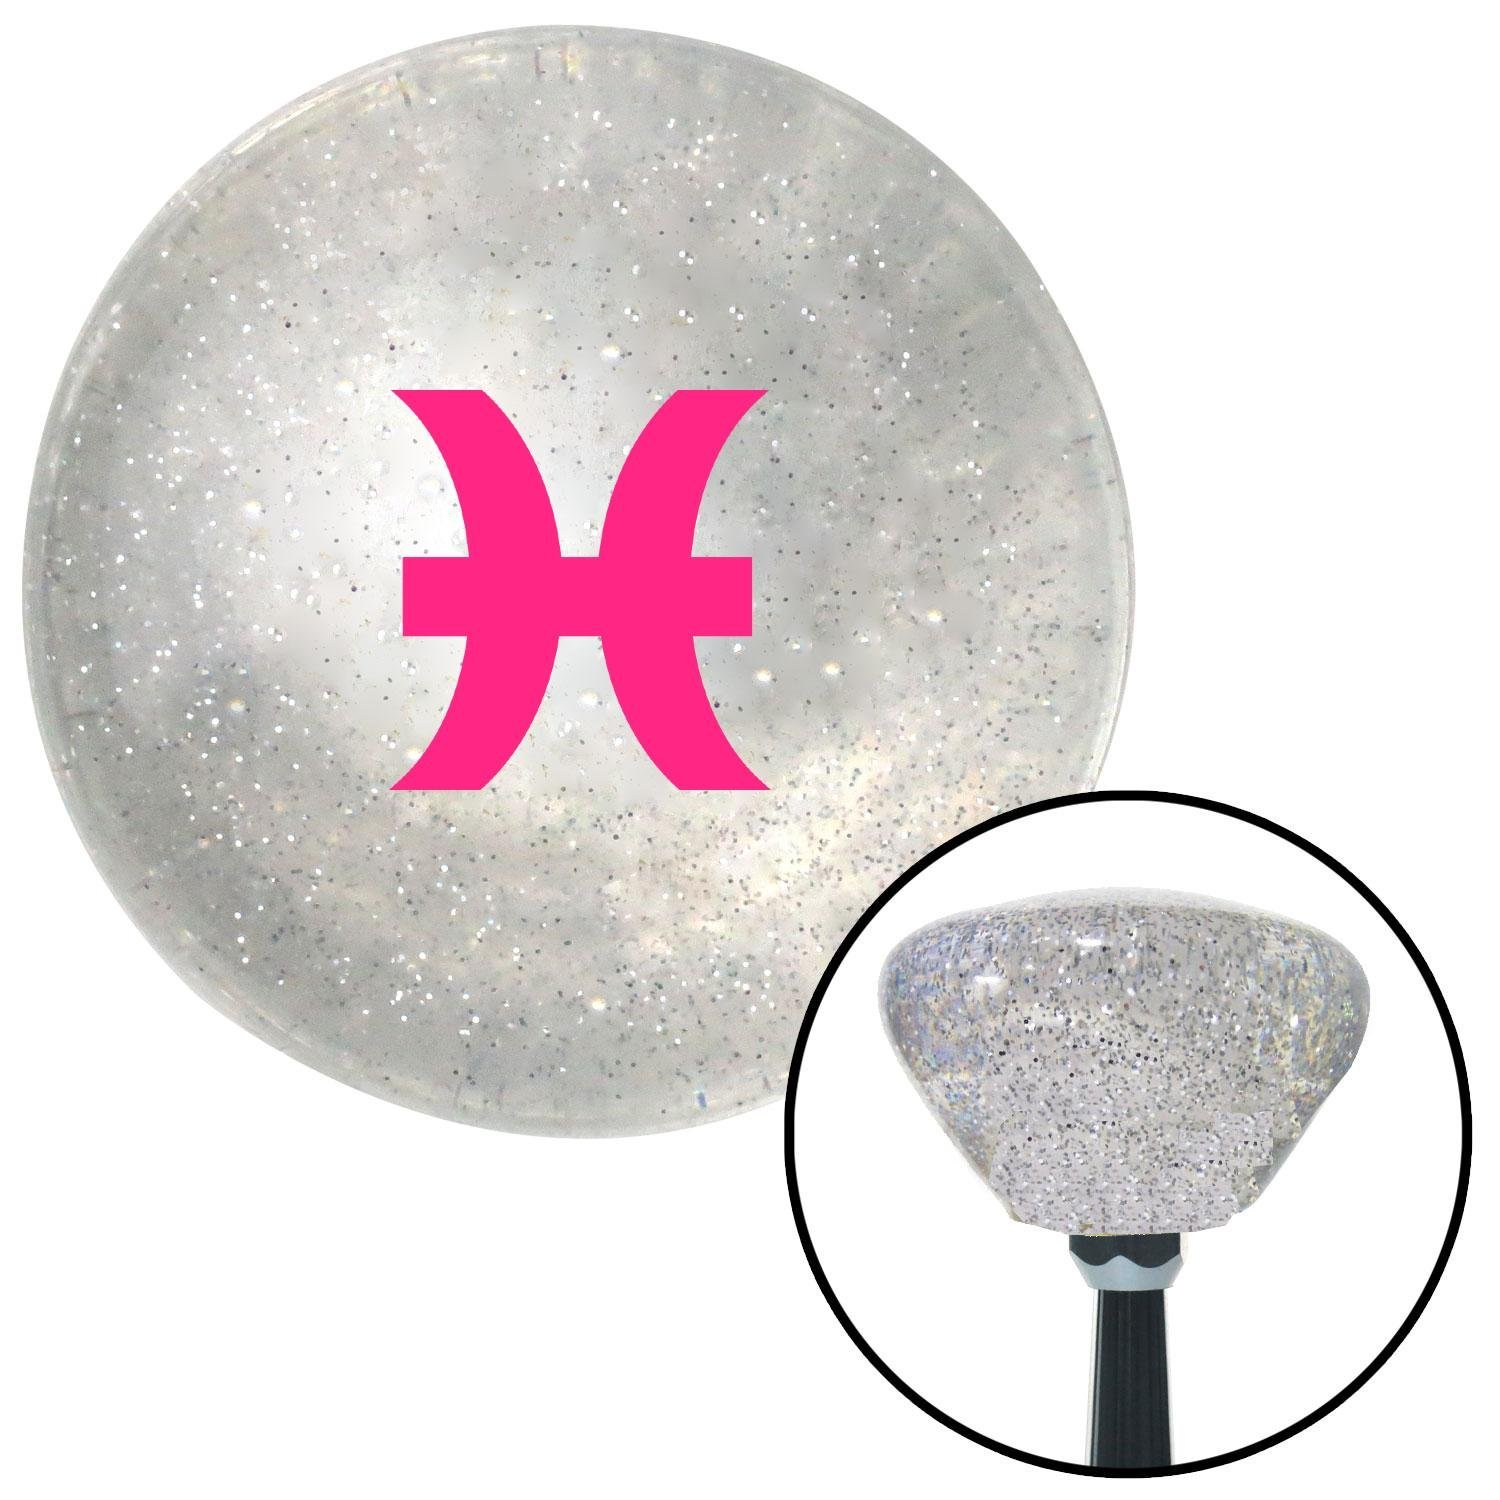 American Shifter 286080 Shift Knob Pink Pisces Clear Retro Metal Flake with M16 x 1.5 Insert